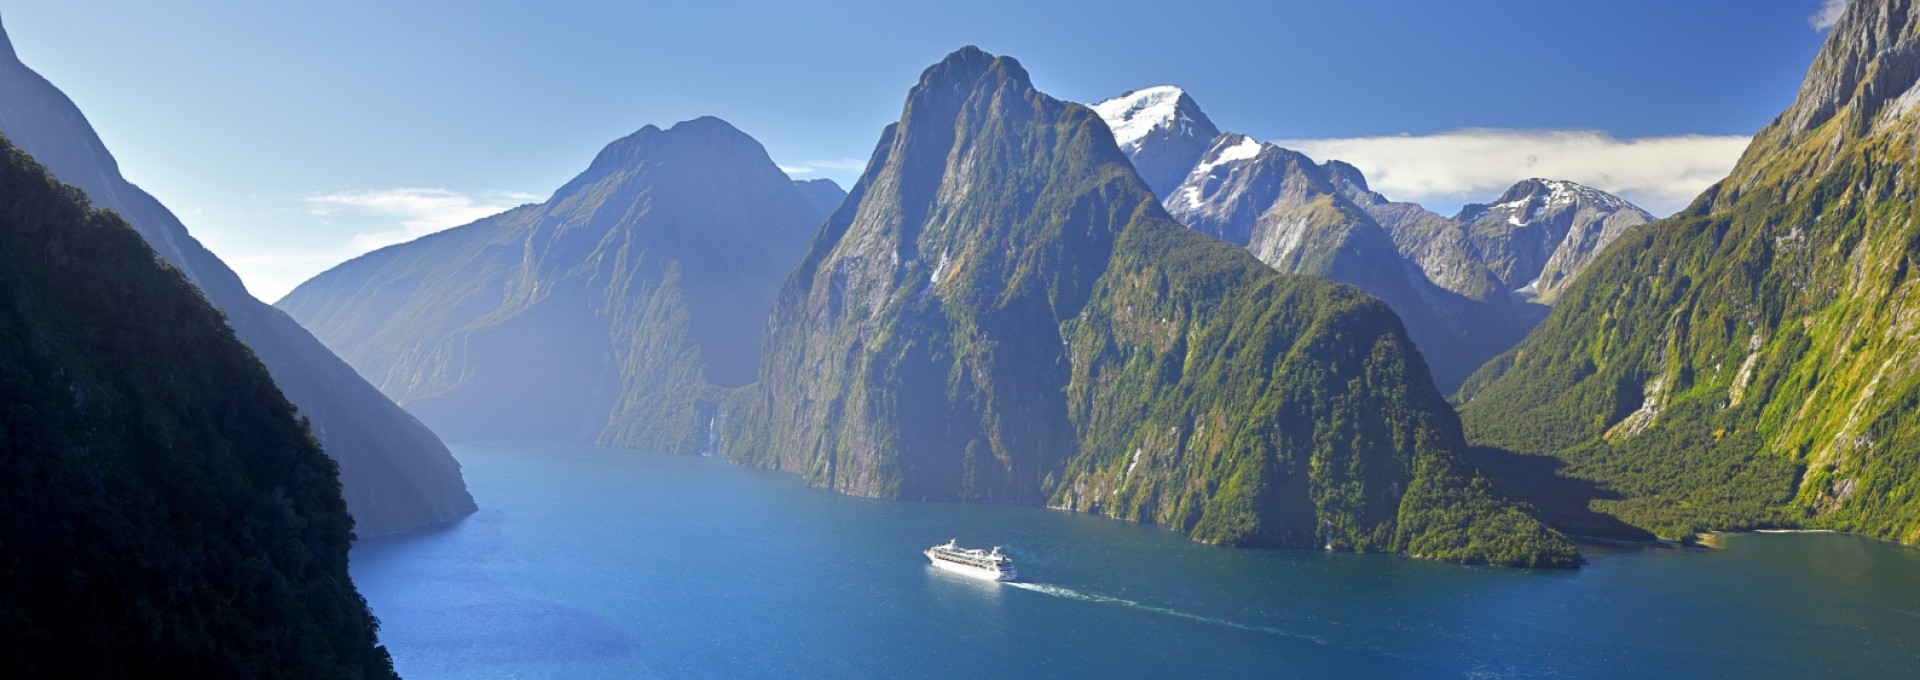 Discover the majestic Milford Sound in Fiordland National Park